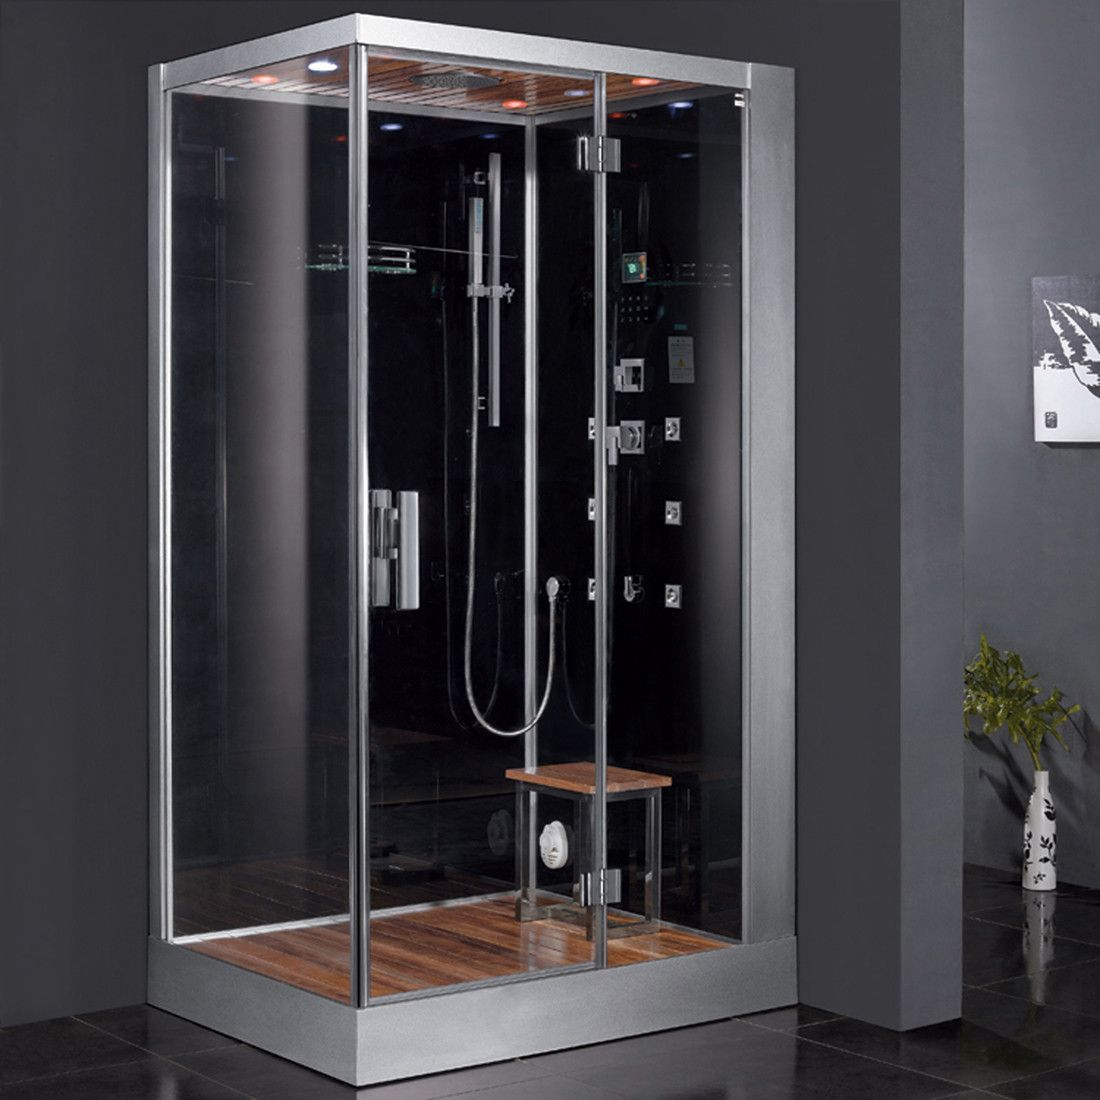 Turning Your Bathroom Into A Personal Sanctuary? Shop Our Selection Of Top  Shower Enclosure Kits, Including Sauna, Steam, And Massaging Shower Models.